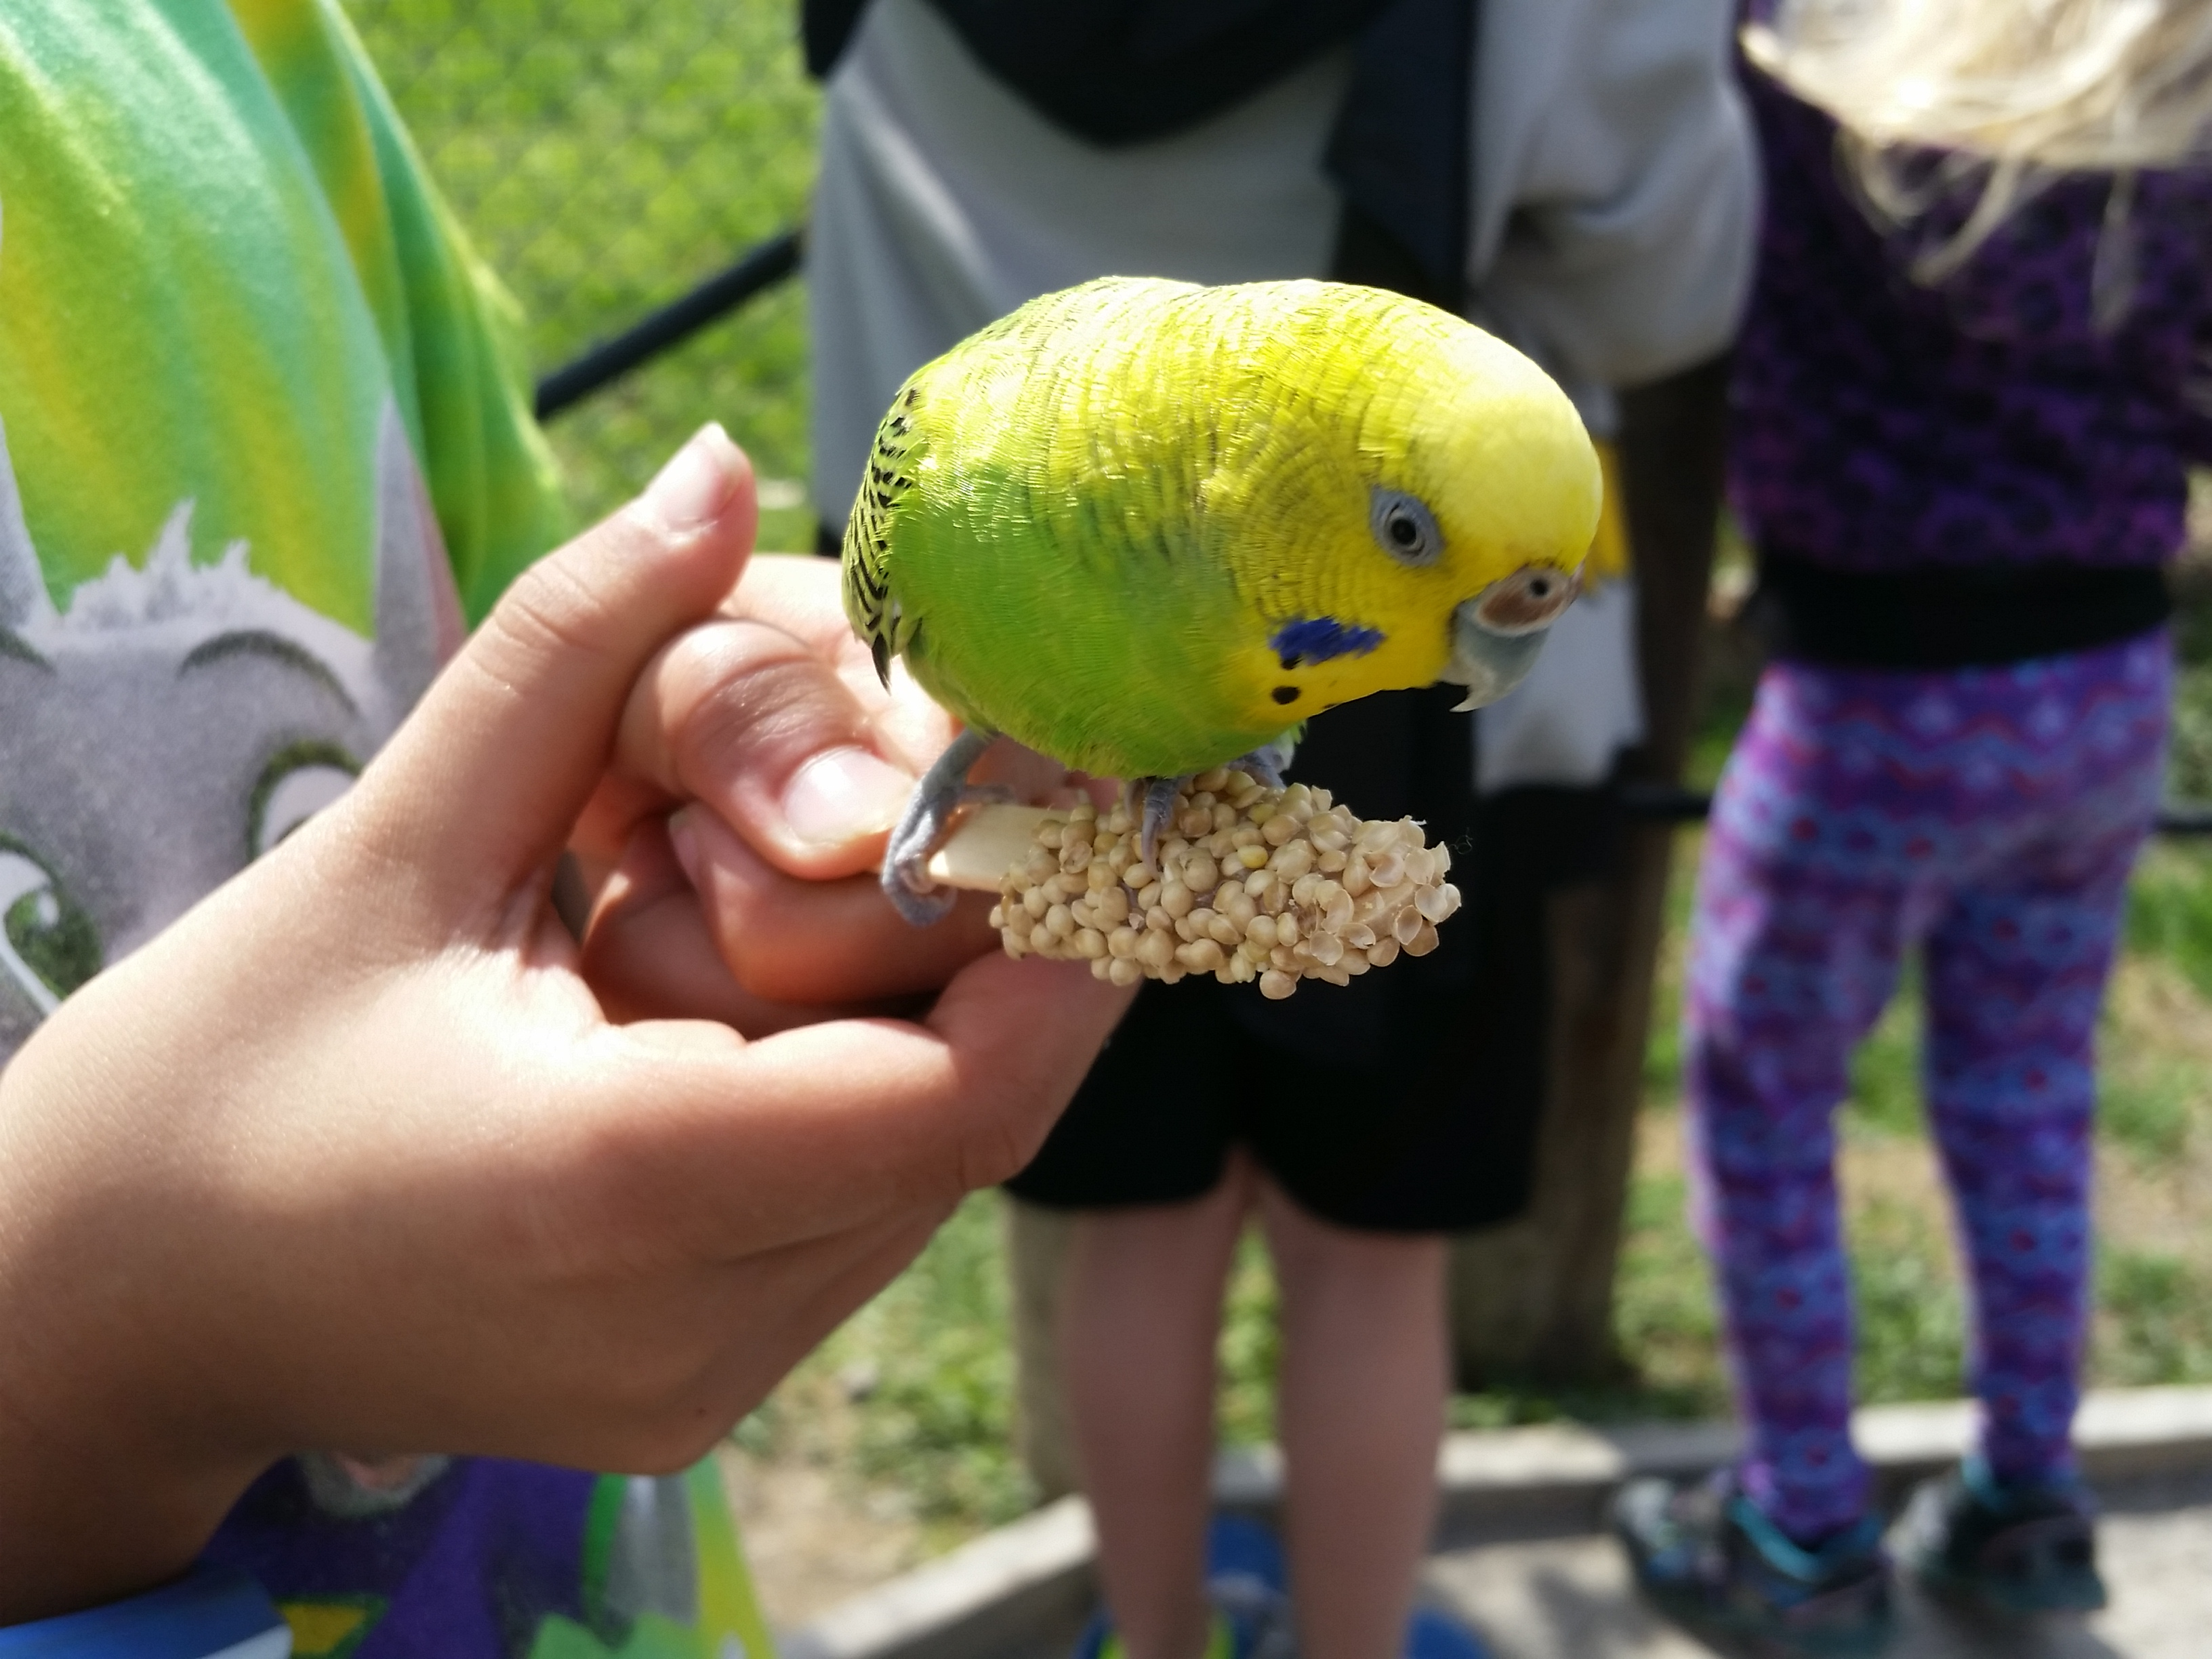 Yellow budgie bird at Virginia Safari Park